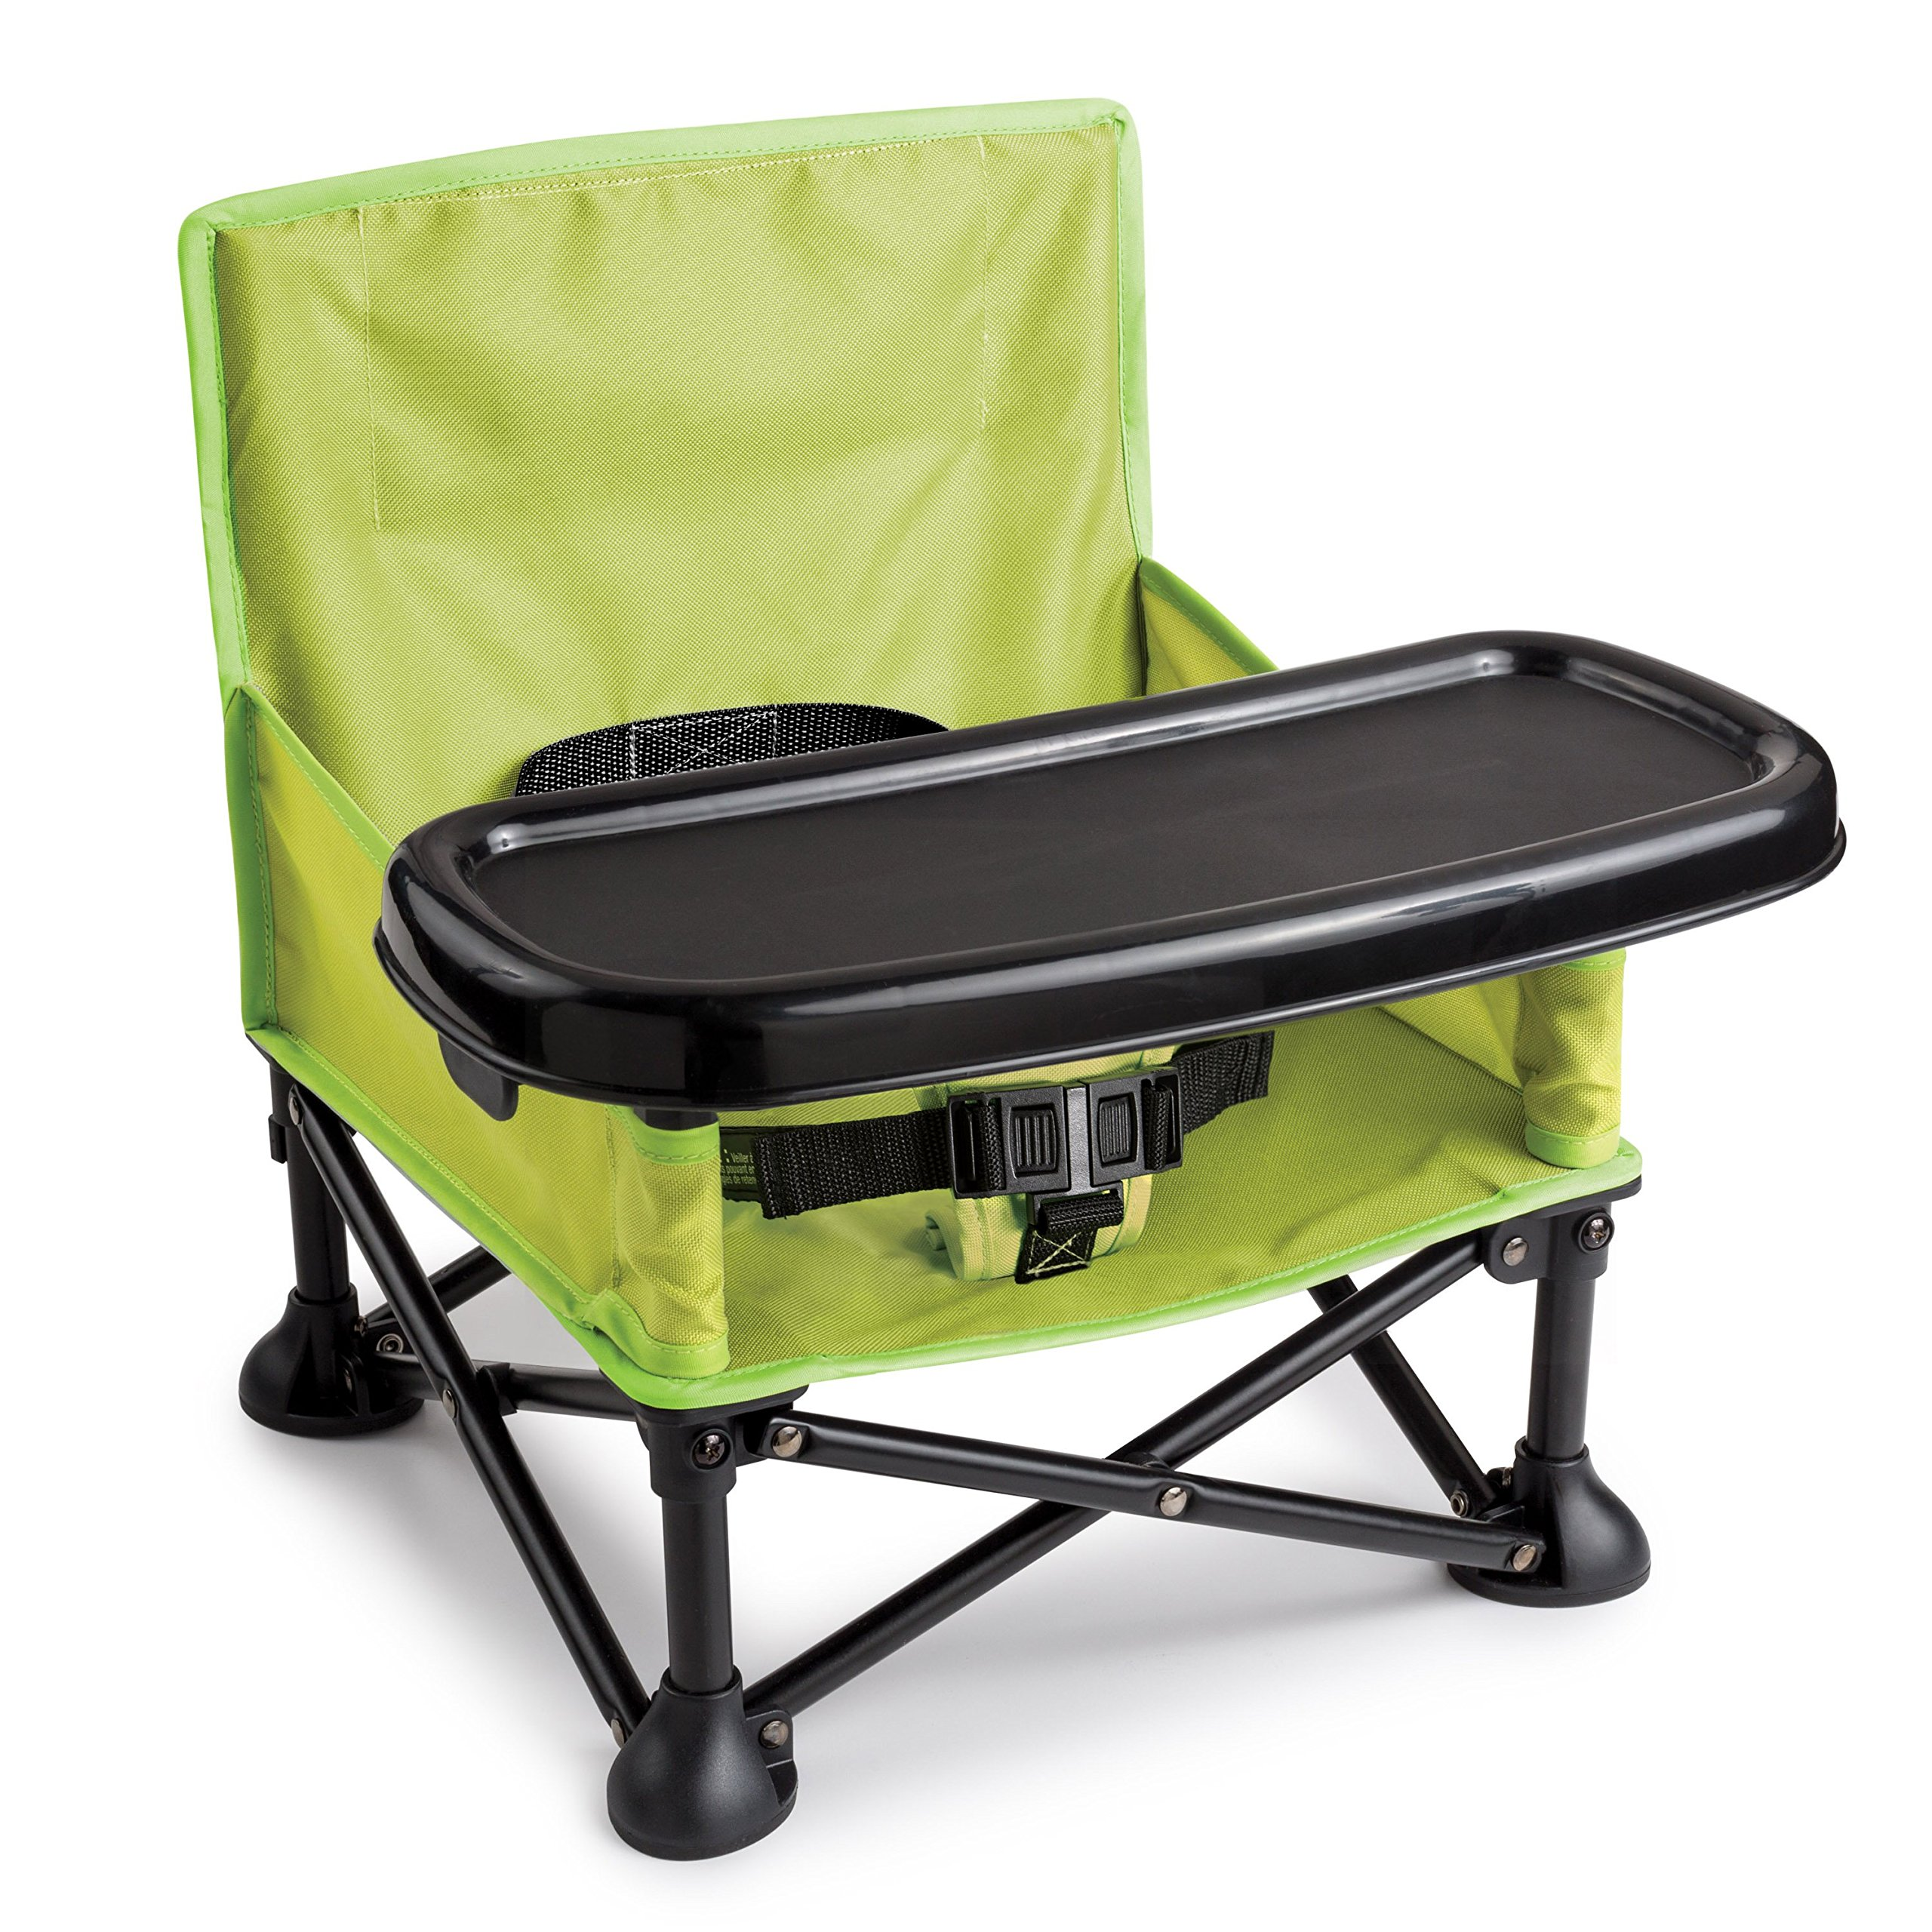 New Camping Booster Portable Infant Seat Baby Toddler